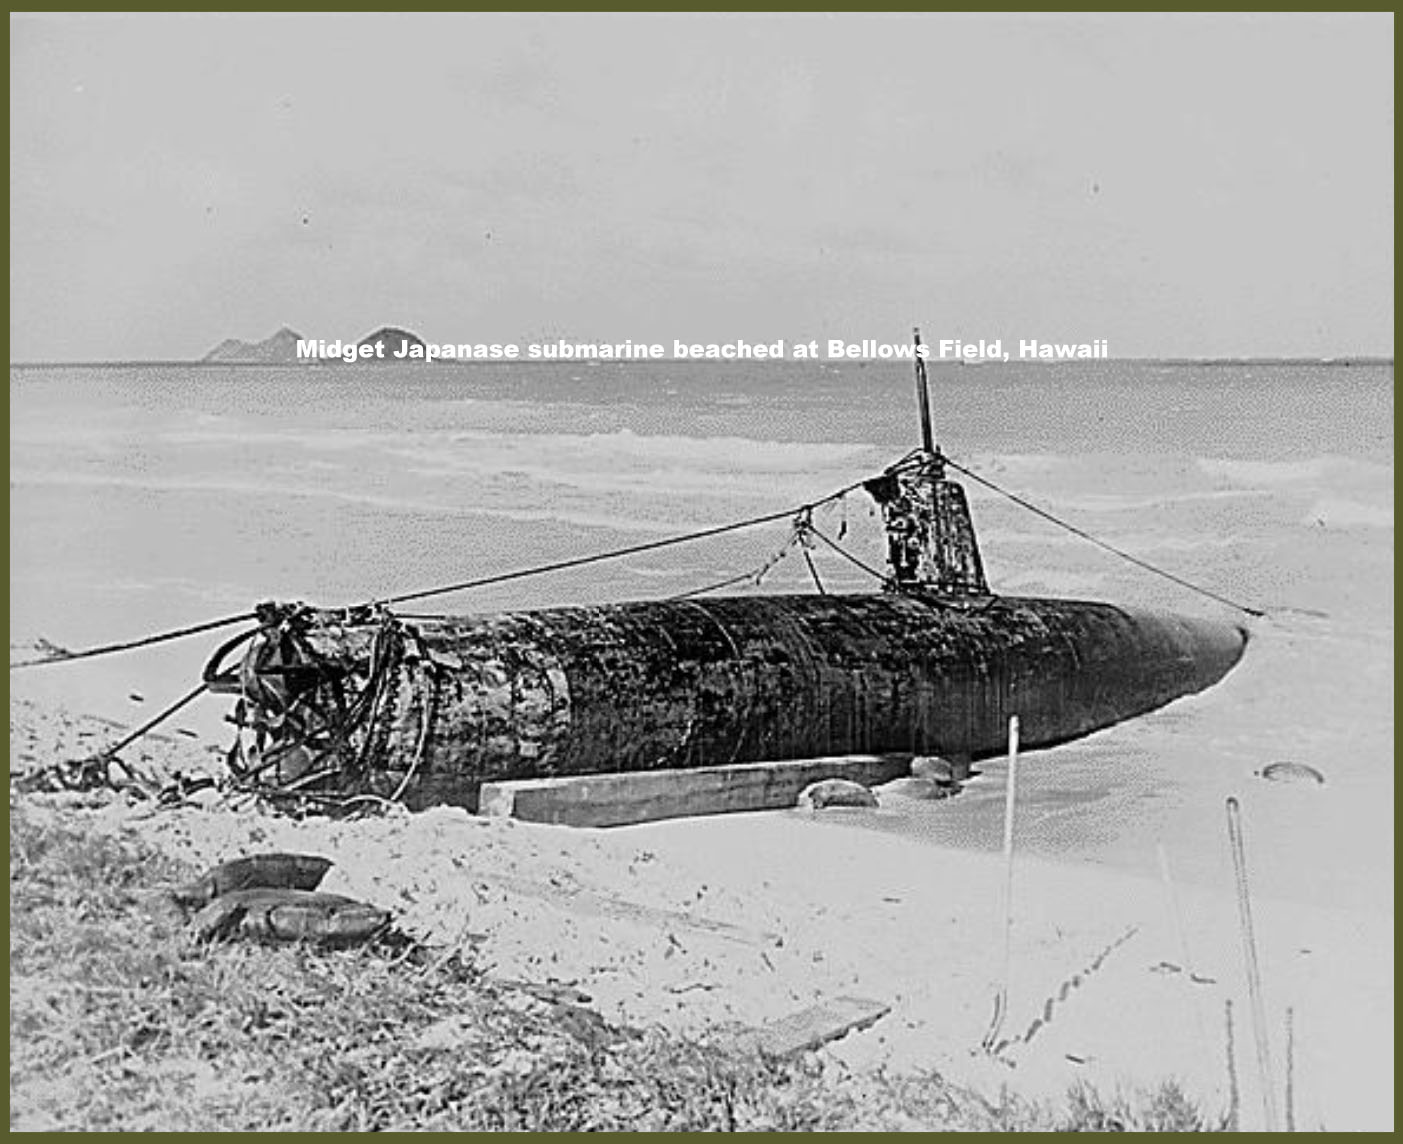 Midget Japanese submarine beached at Bellows Field, Hawaii